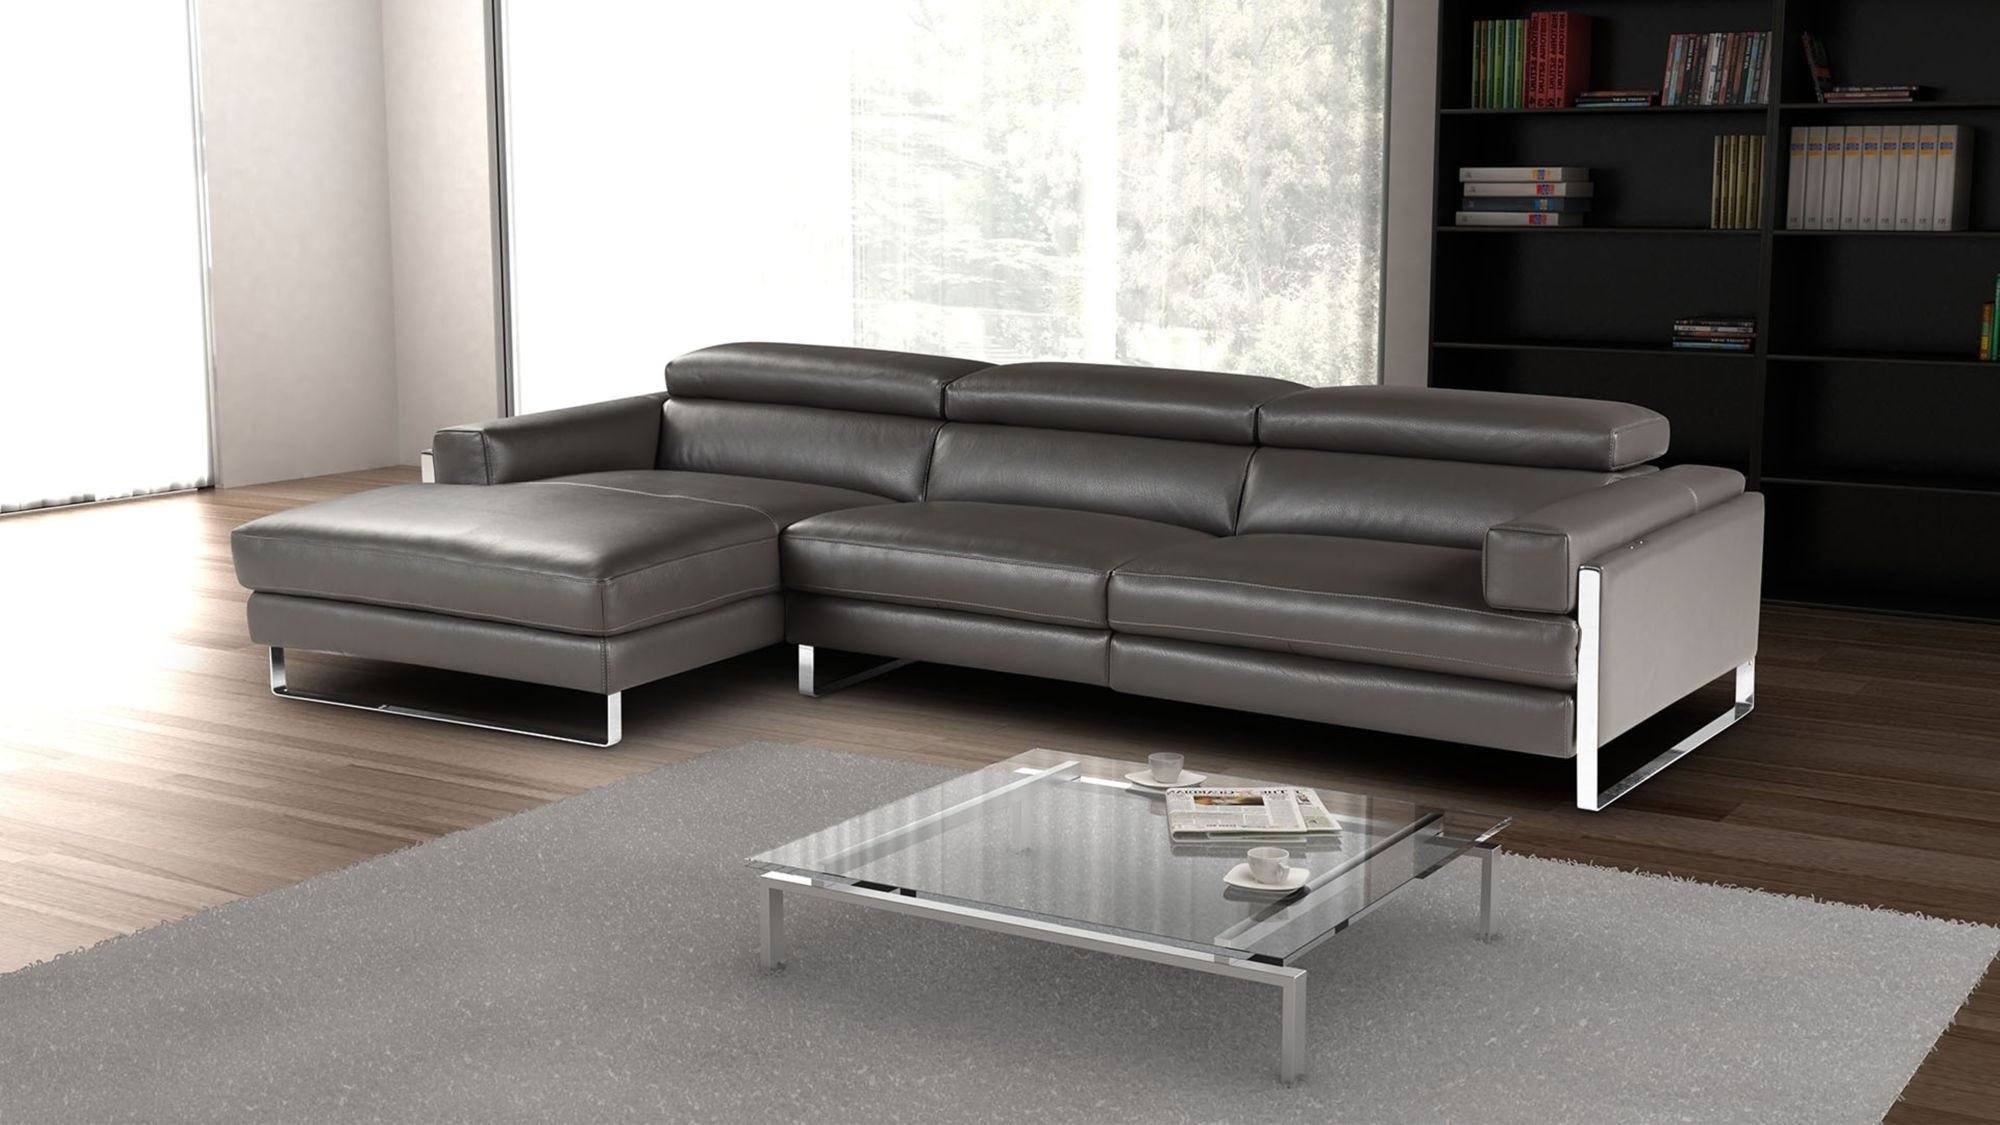 Famous Kellanght Sectional Sofa Angled Empress Arm Jackson Domino Piece Throughout Regina Sectional Sofas (View 5 of 15)